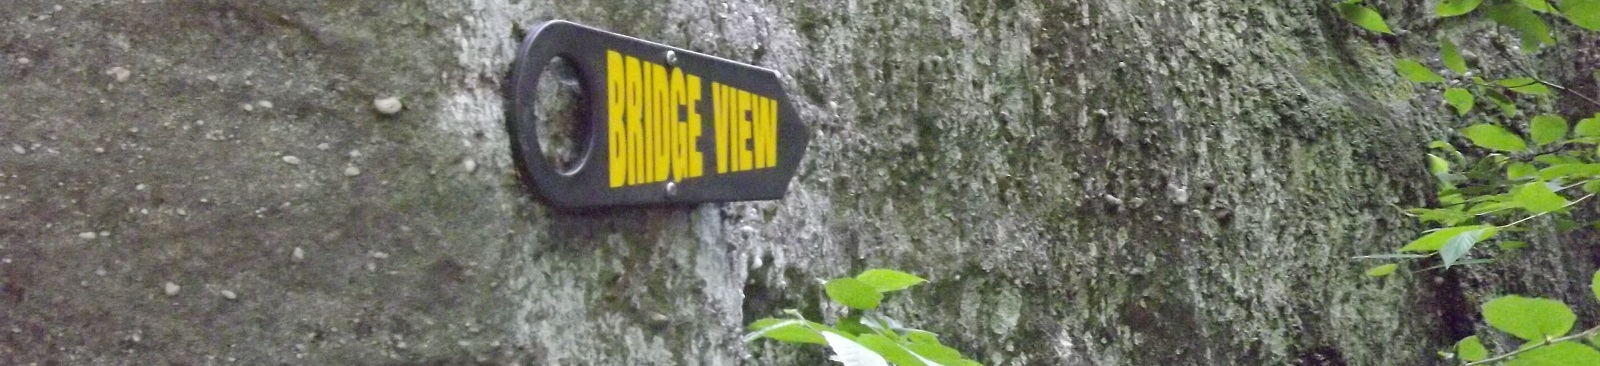 Bridge View Sign